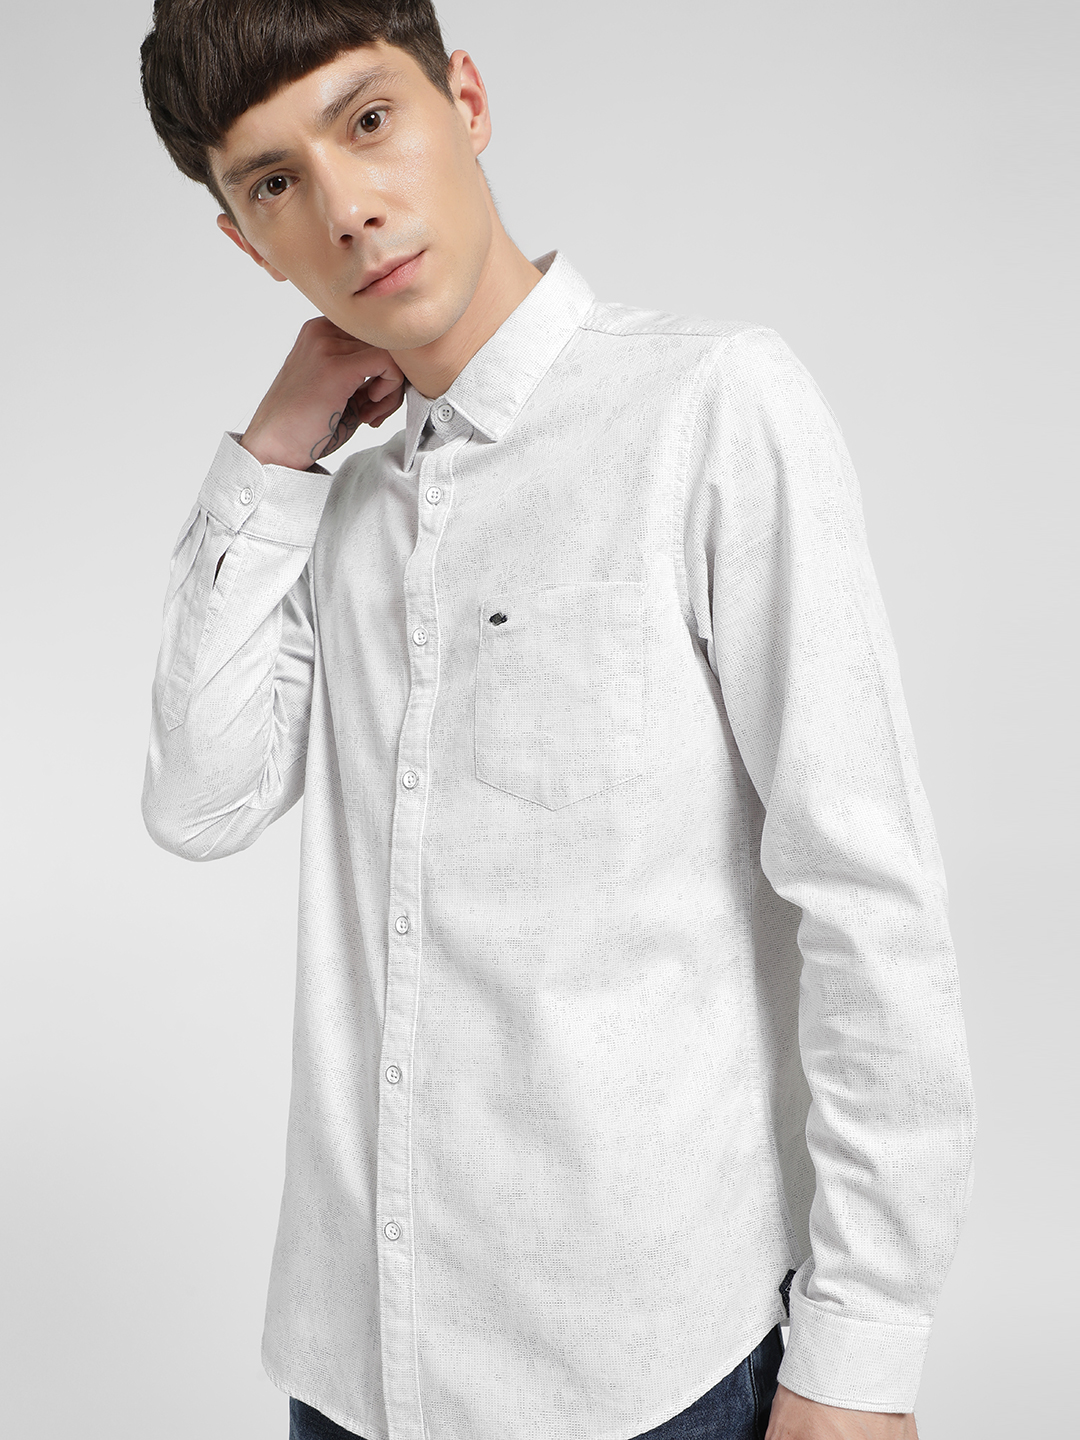 Lee Cooper White Floral Self Design Shirt 1